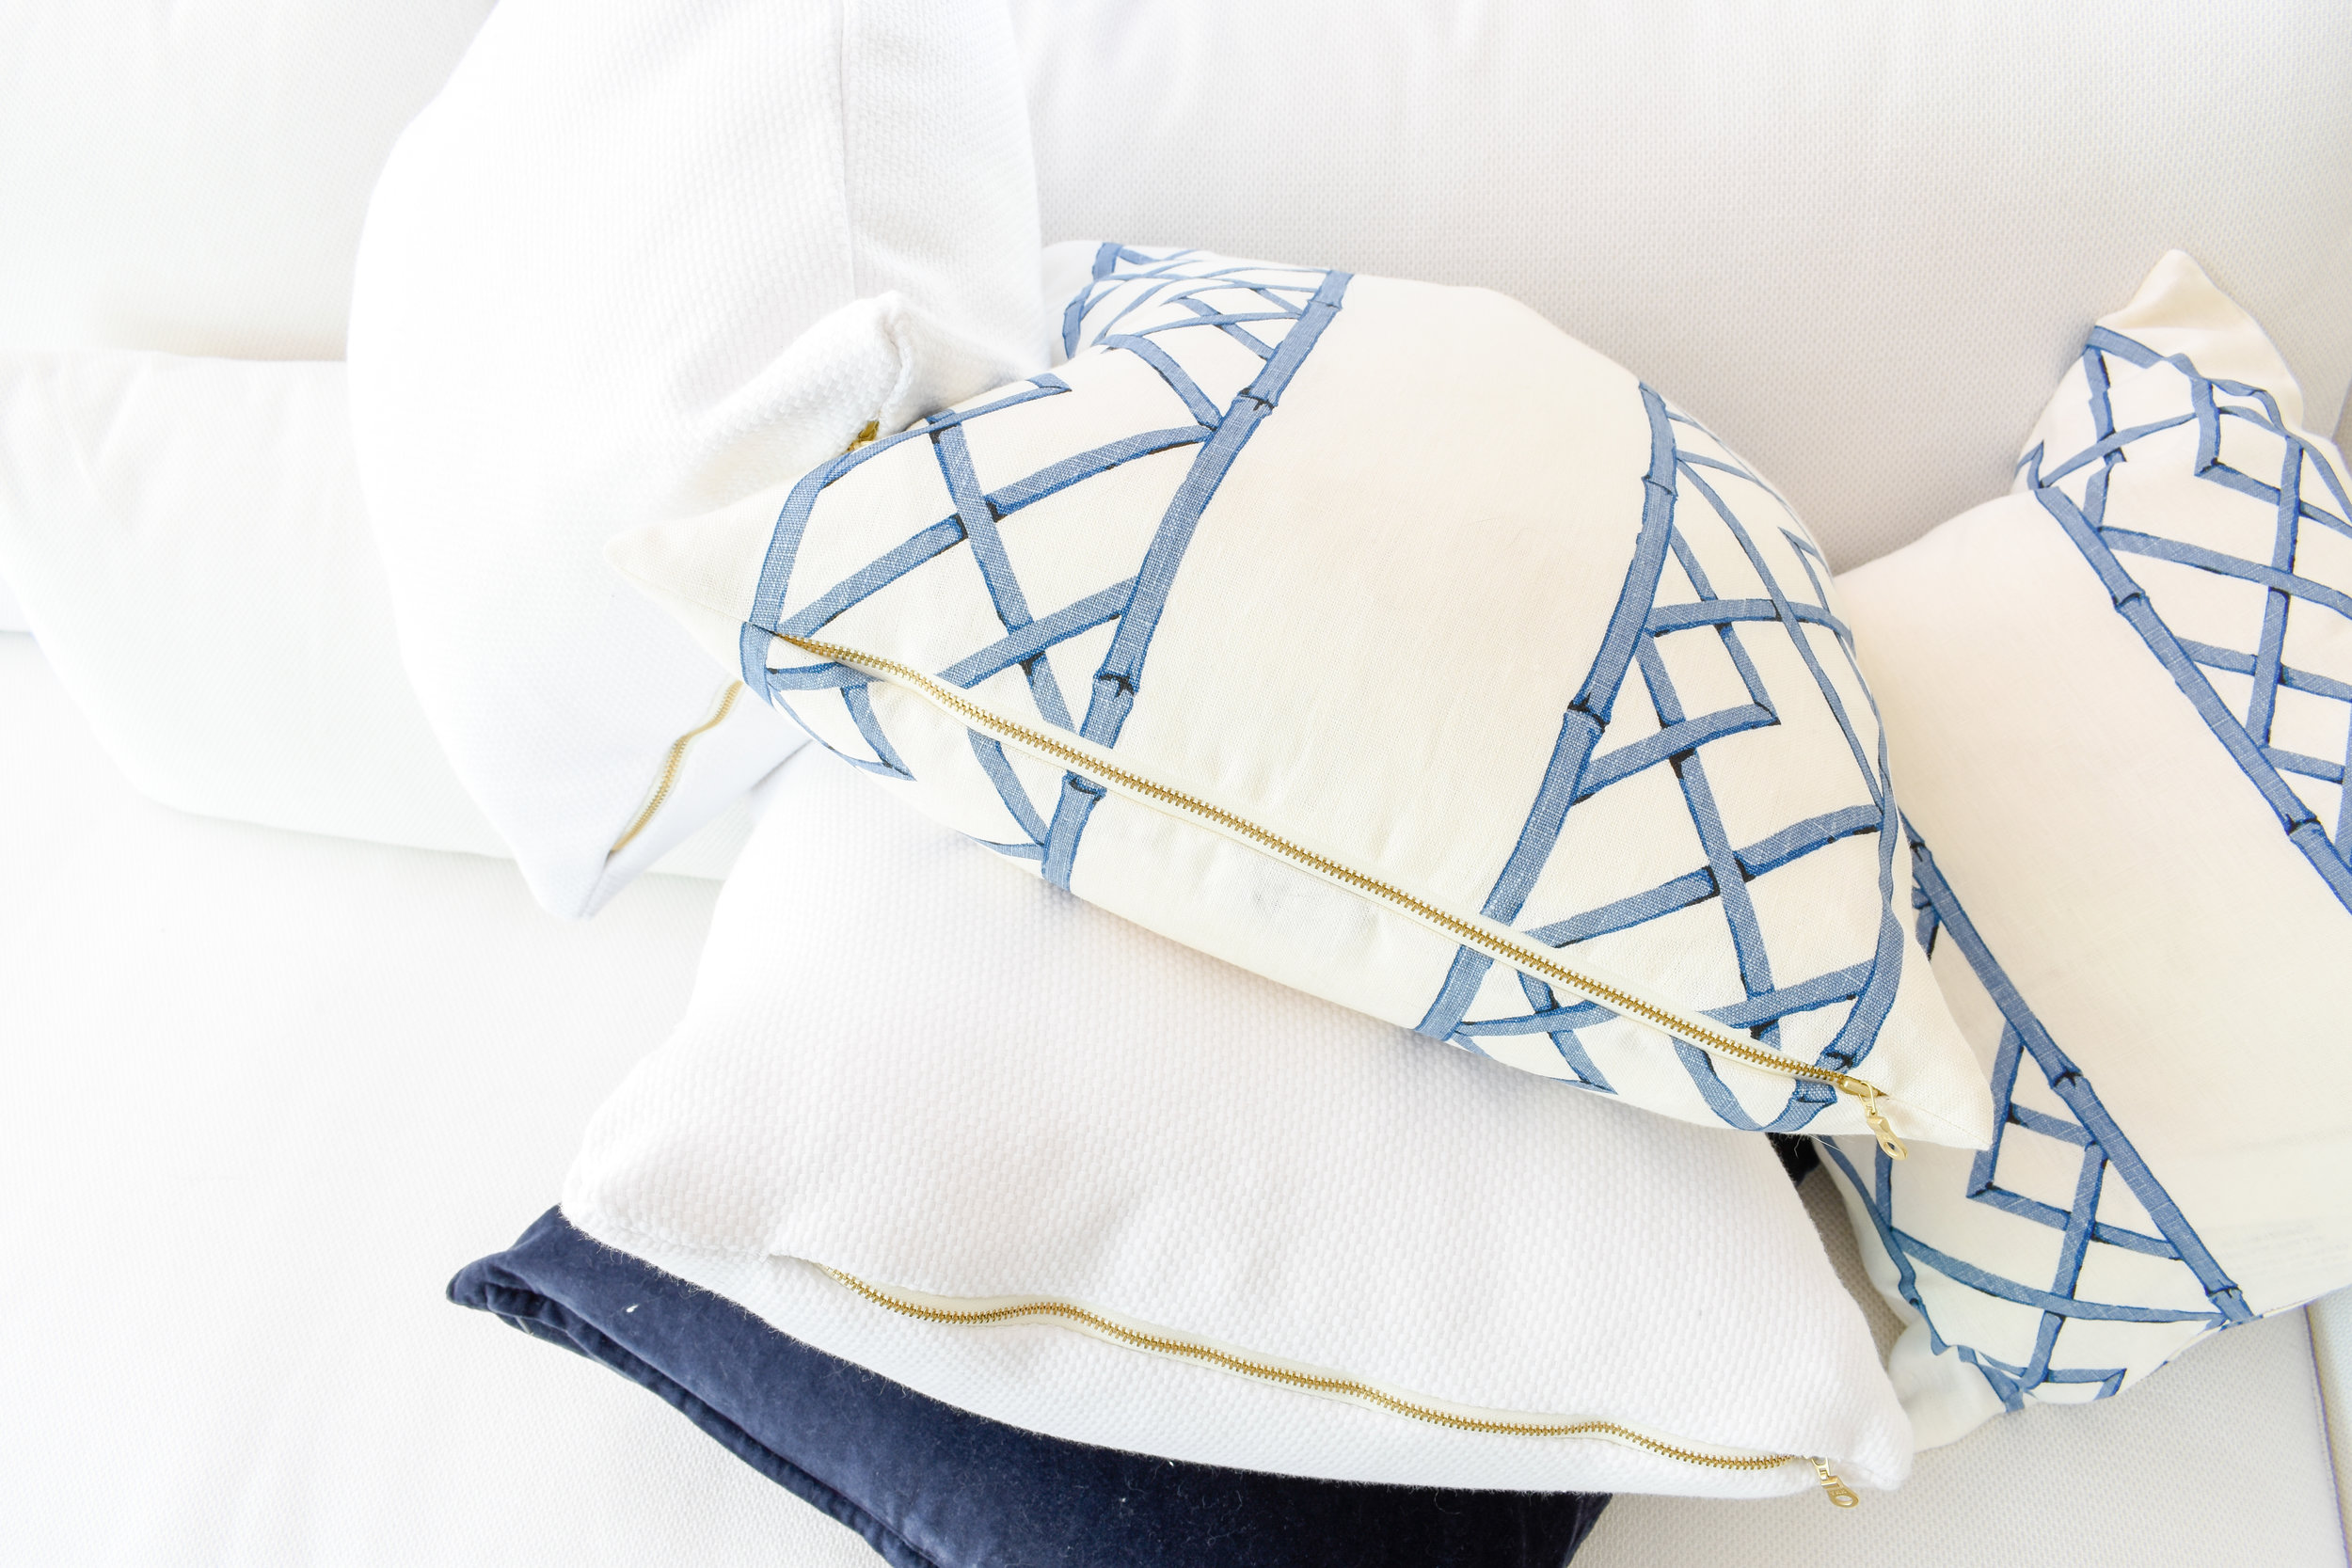 chinoiserie style throw pillows in blue and white